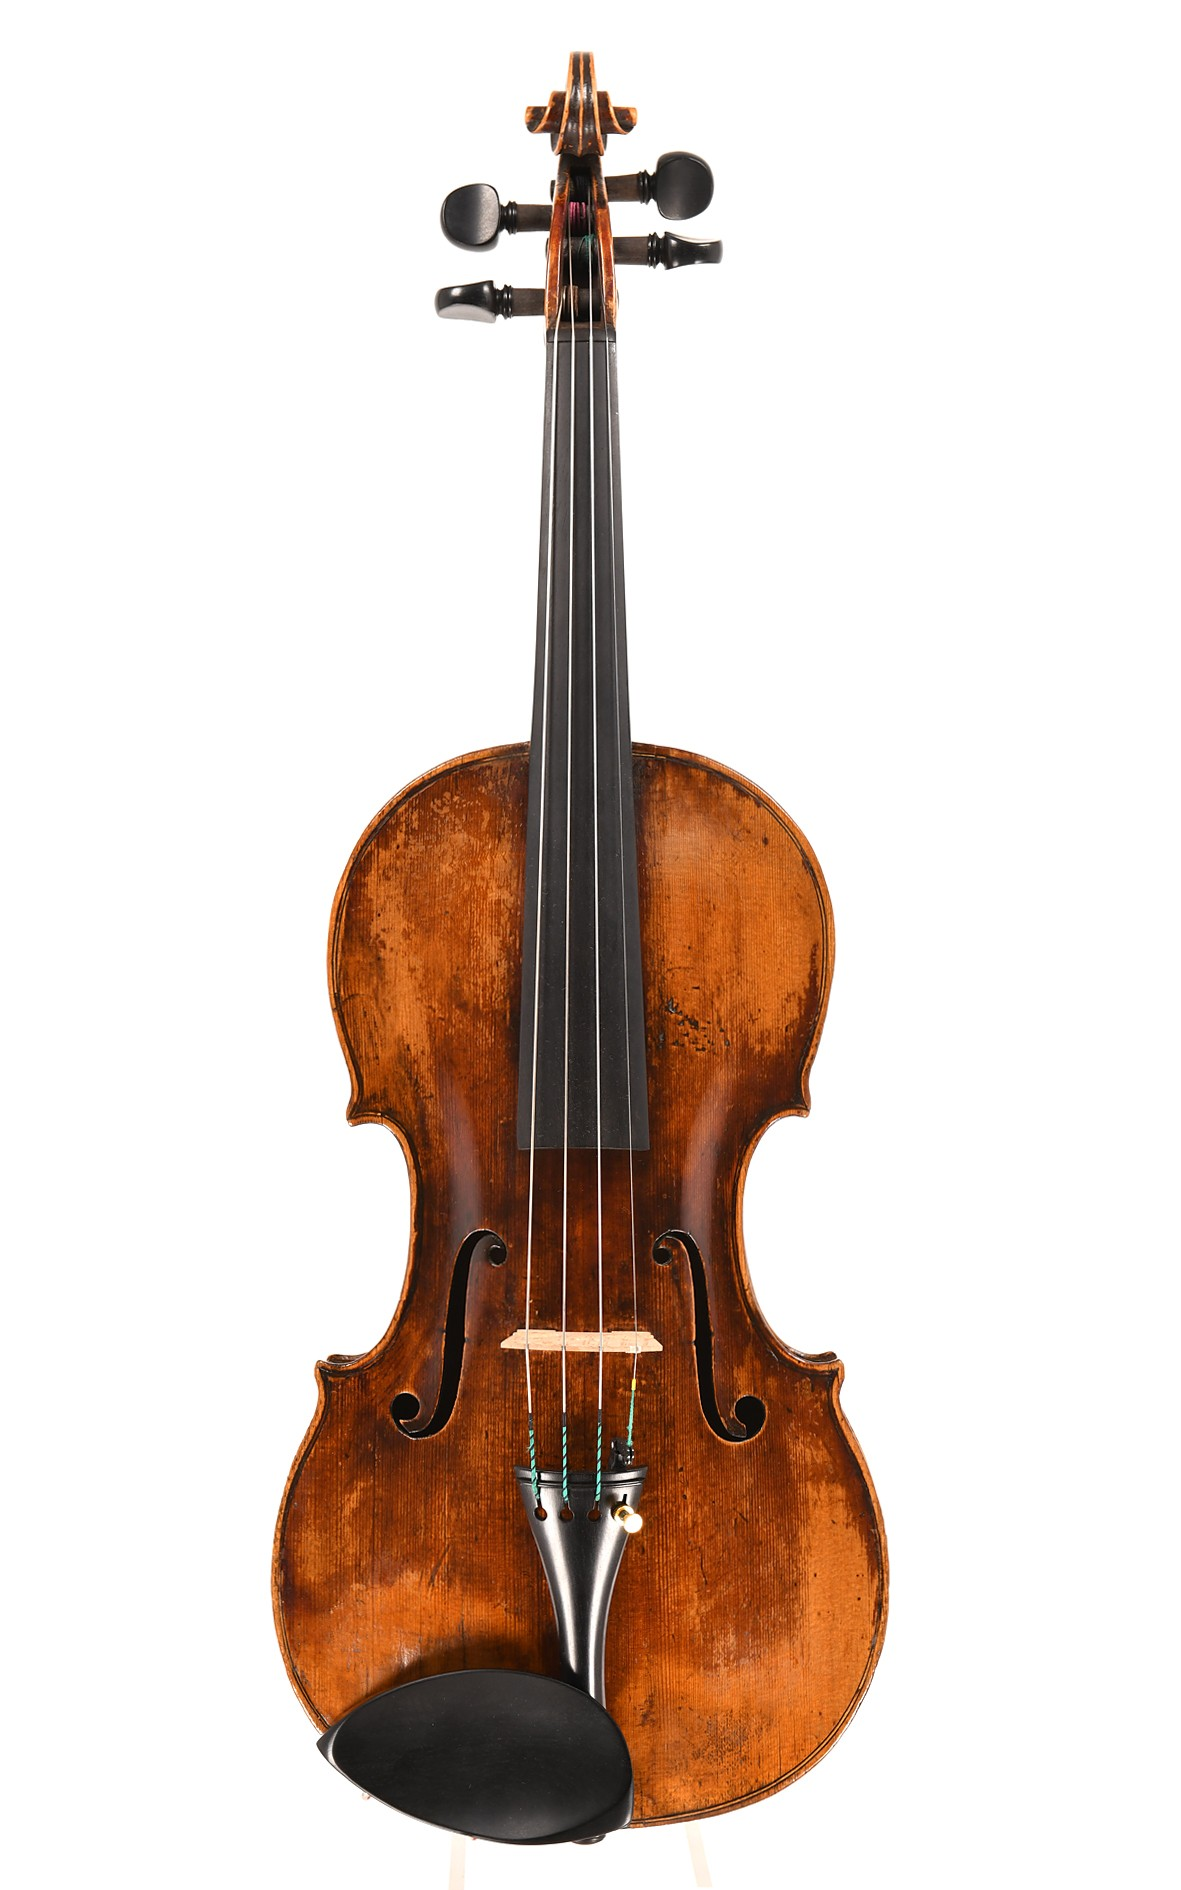 Fine violin of the Thir school, circa 1750